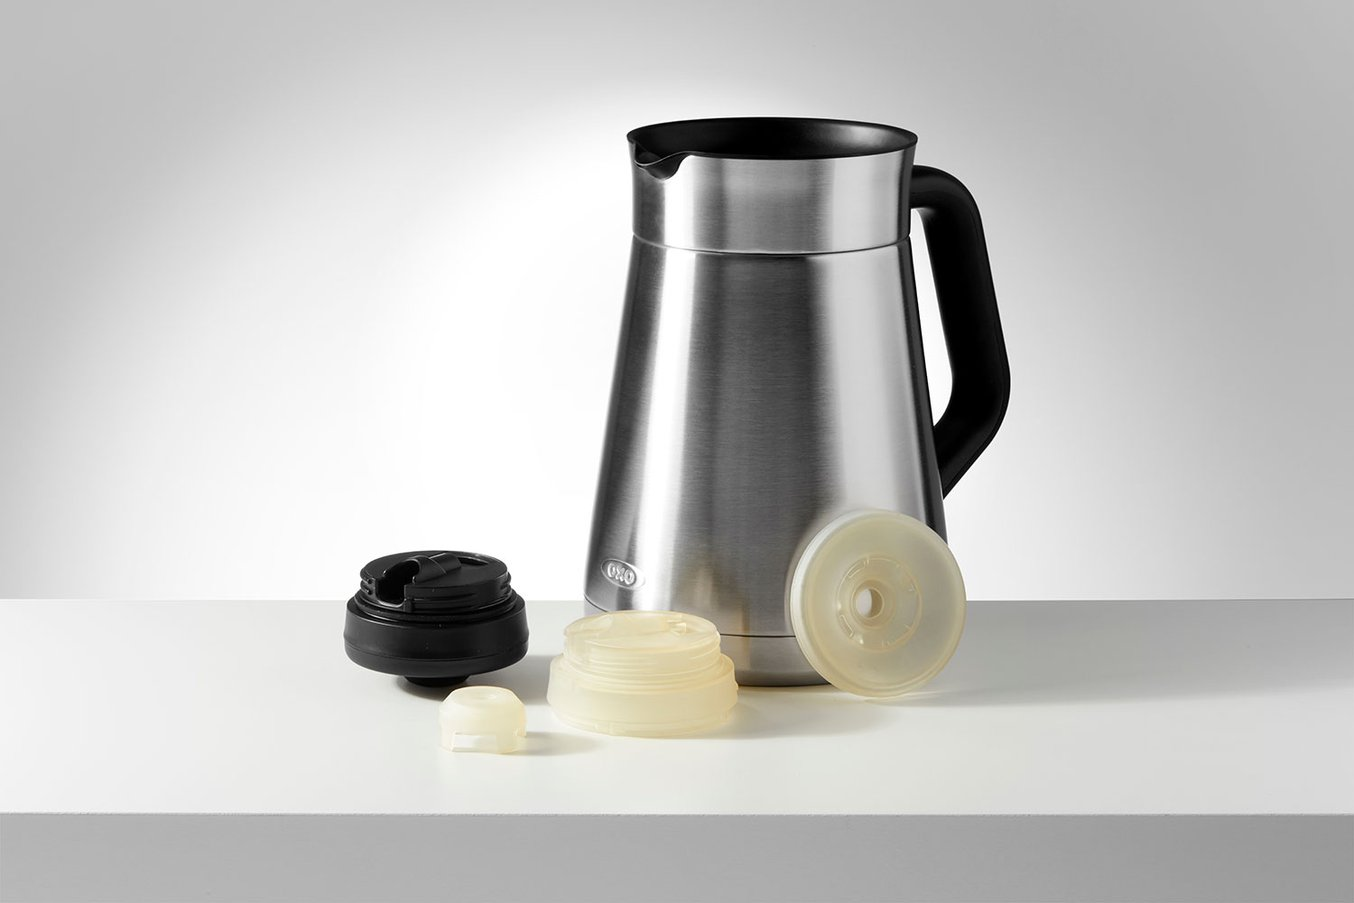 During the design process for their Barista Brain 9 Cup Coffee Maker, OXO used the Form 2 and High Temp Resin to prototype functional parts that needed to come into contact with boiling water.